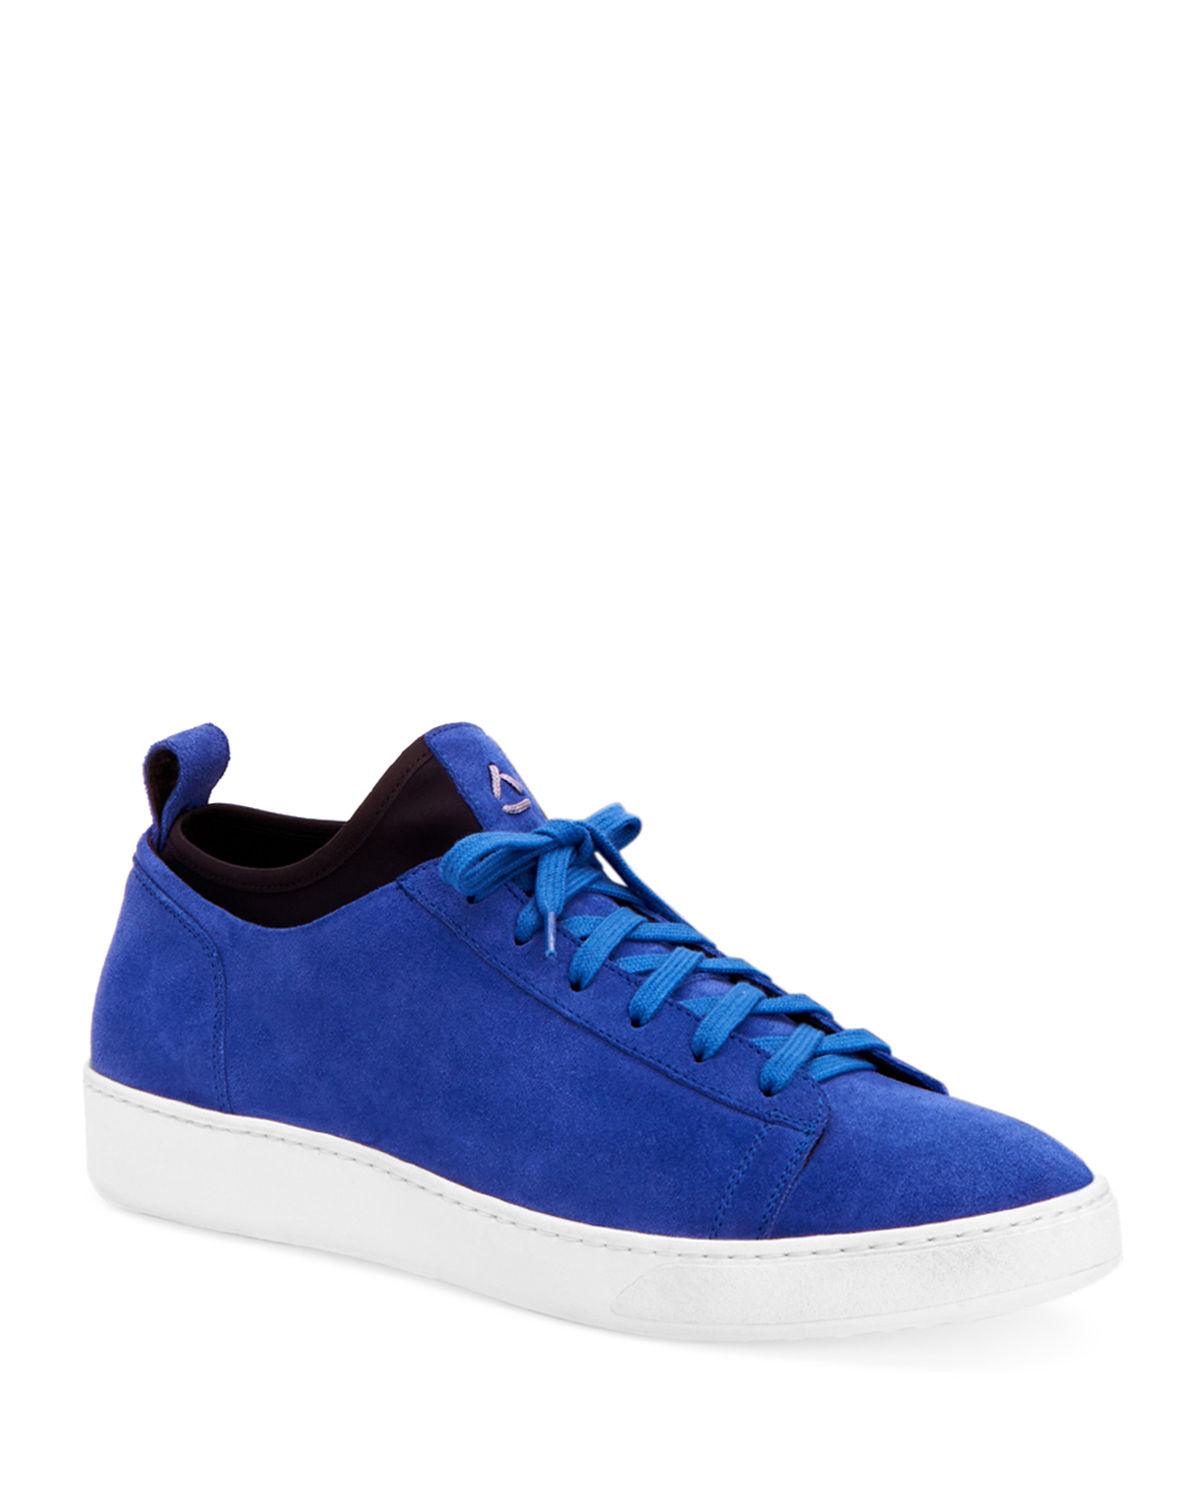 Aquatalia Sneakers MEN'S SUEDE LOW-TOP SOCK SNEAKERS